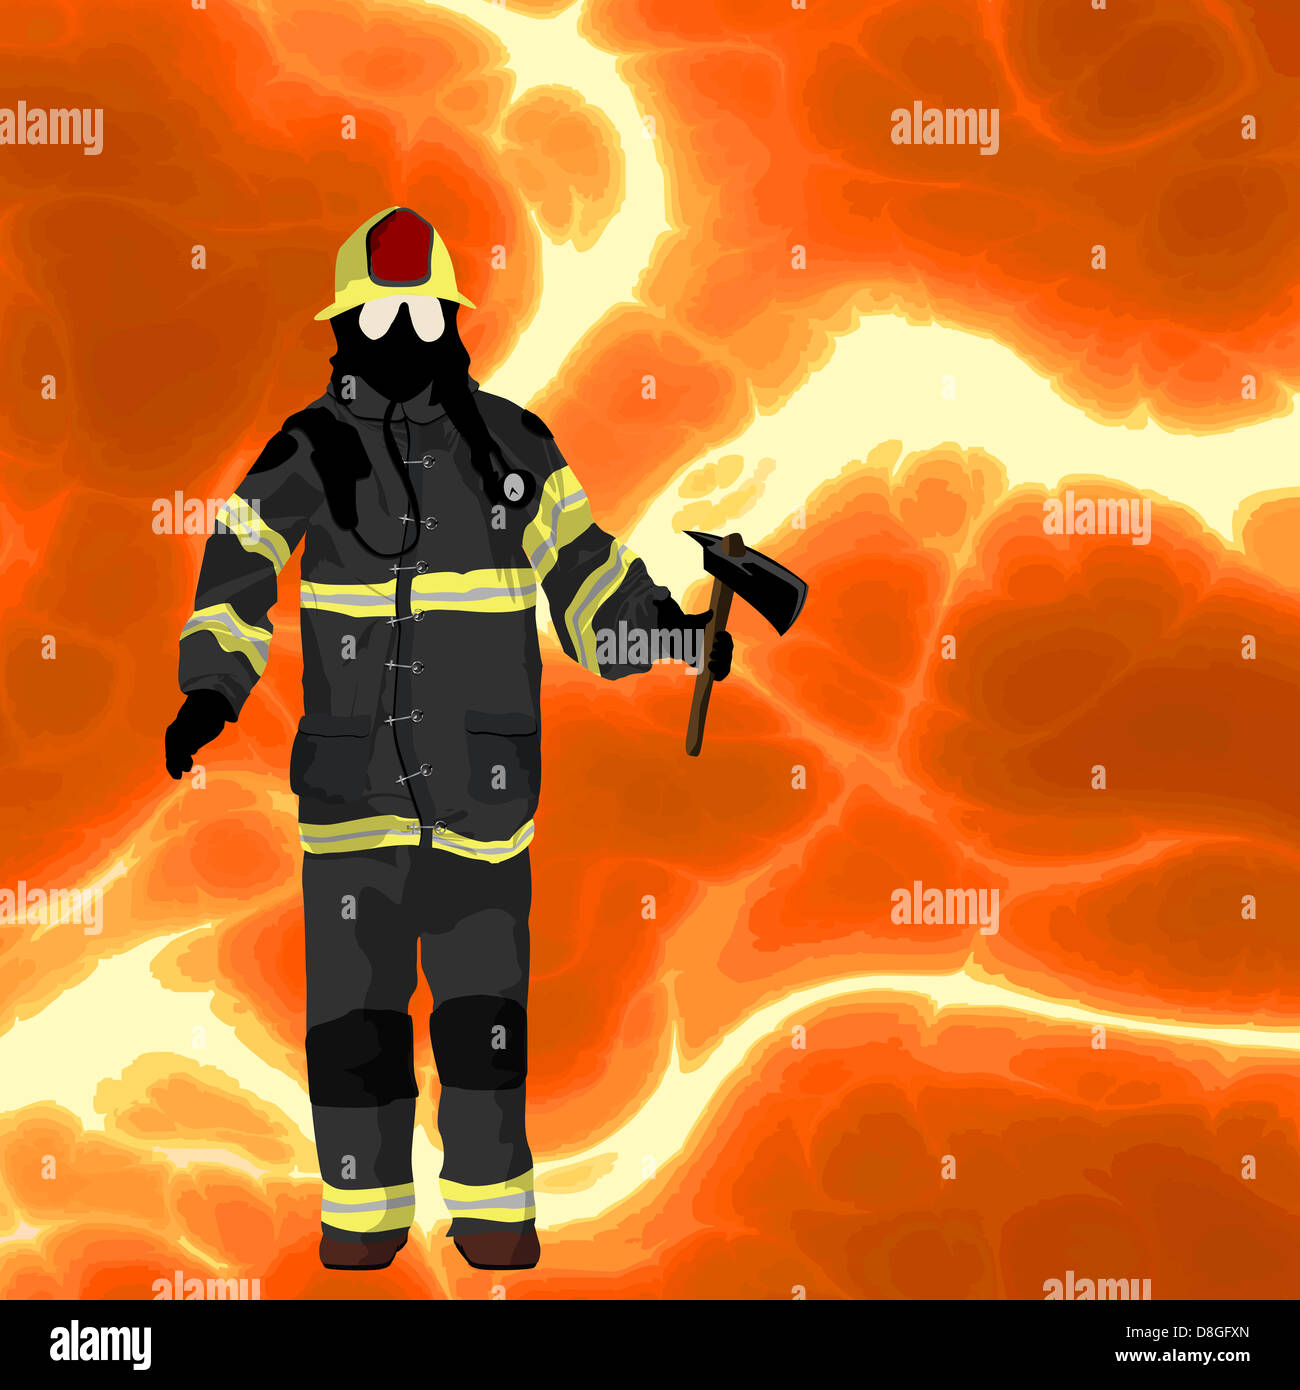 Firefighter background - Stock Image